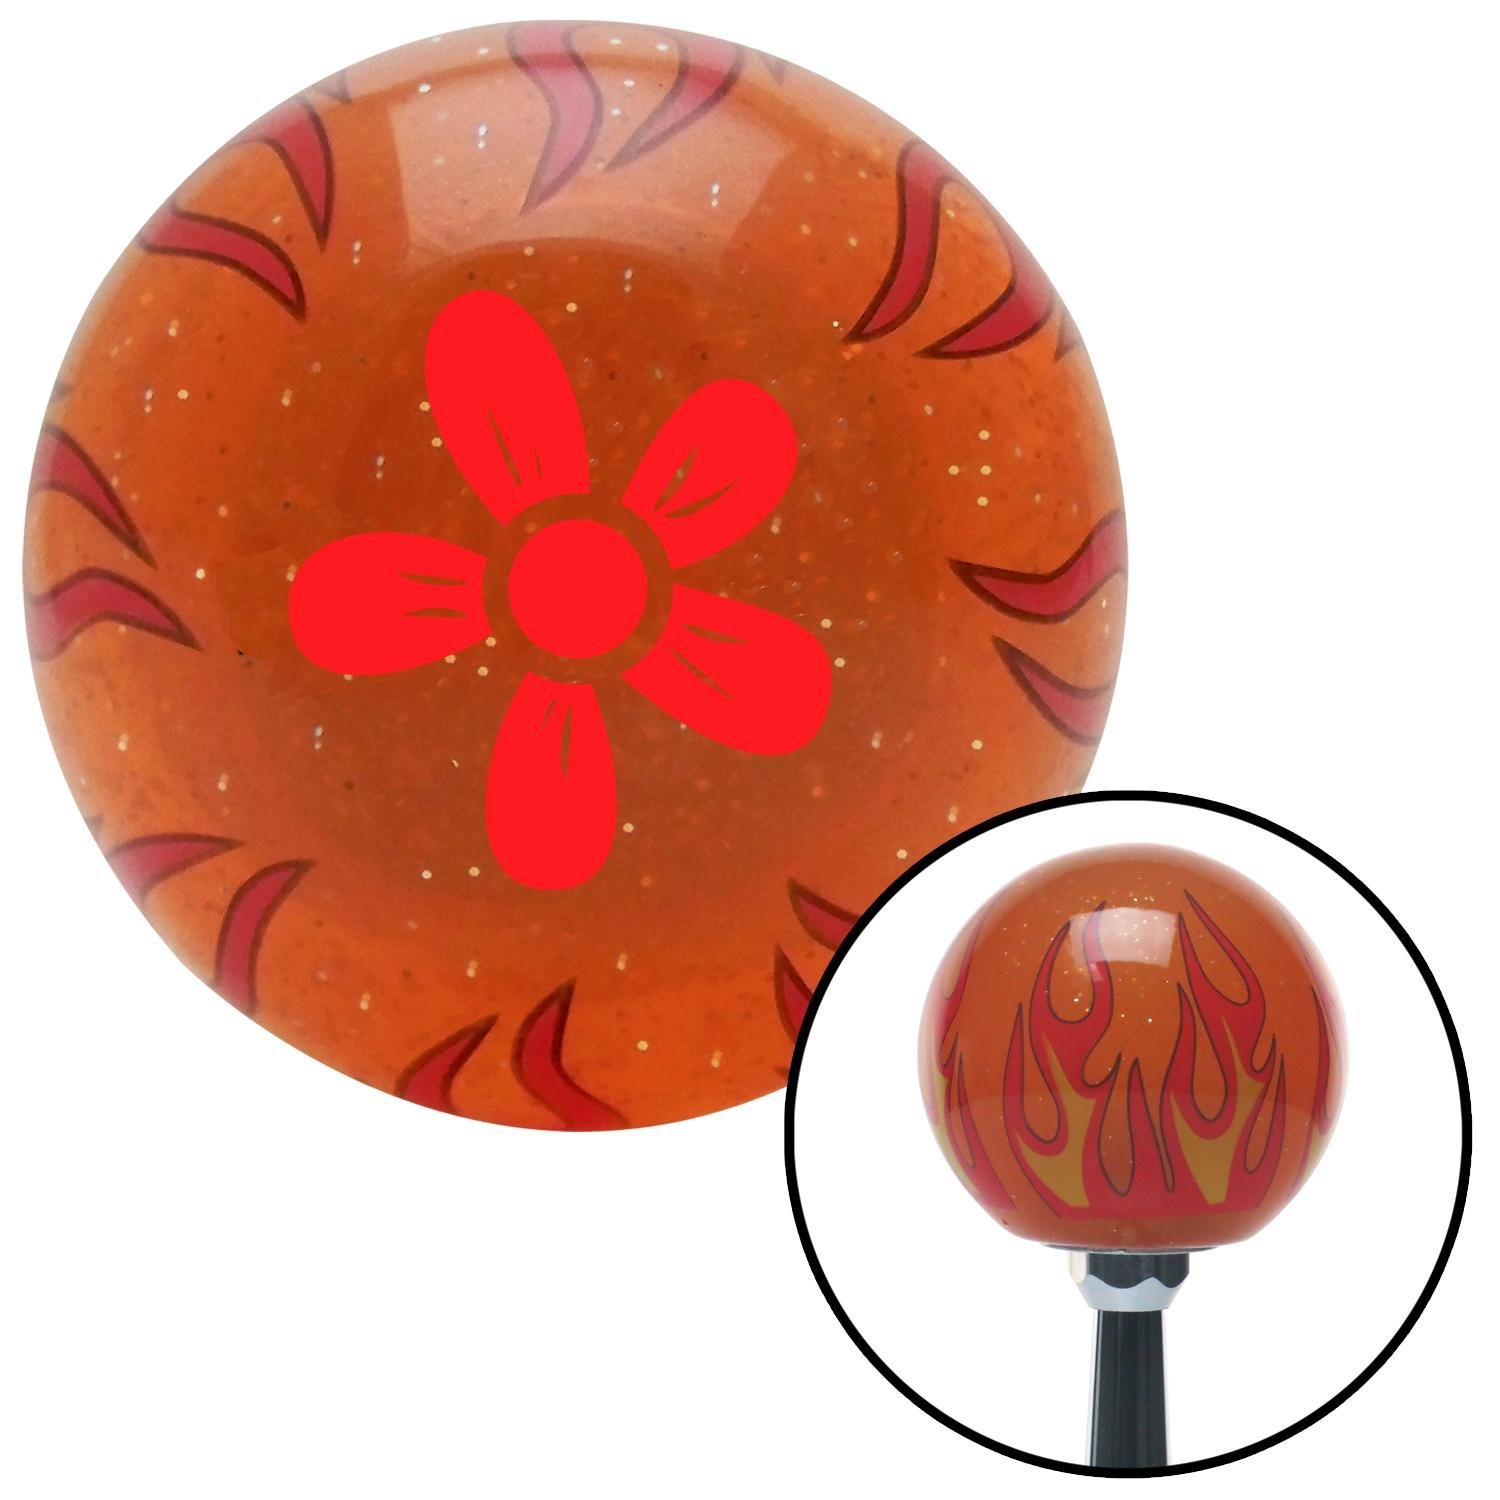 Red Flower - Daisy American Shifter 254608 Orange Flame Metal Flake Shift Knob with M16 x 1.5 Insert